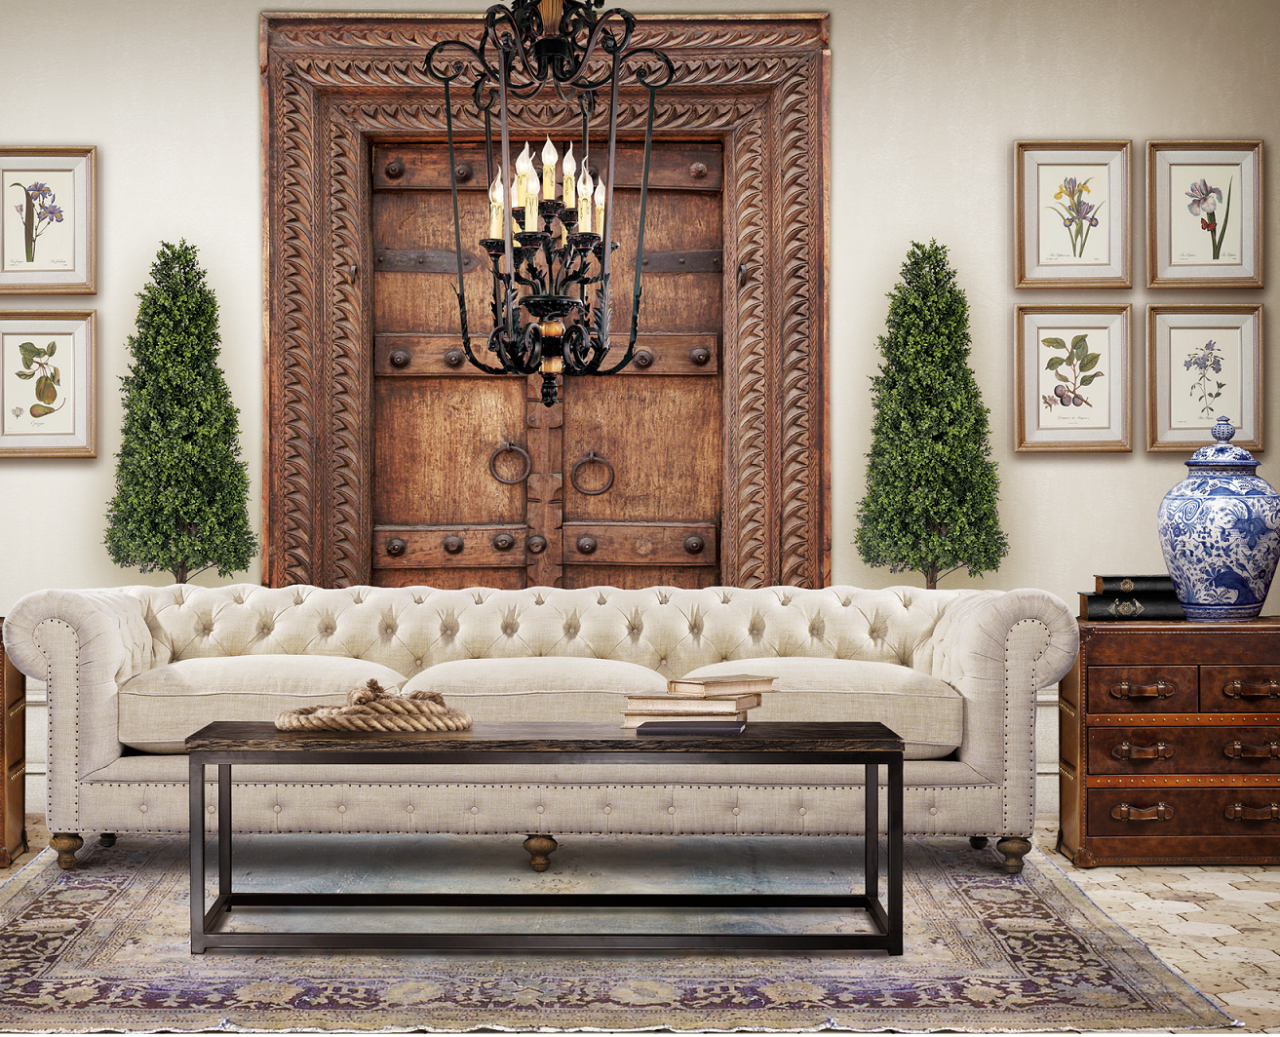 40 Rustic Living Room Ideas To Fashion Your Revamp Around: Chesterfield Cigar Club Tufted Linen Upholstered Sofa 118